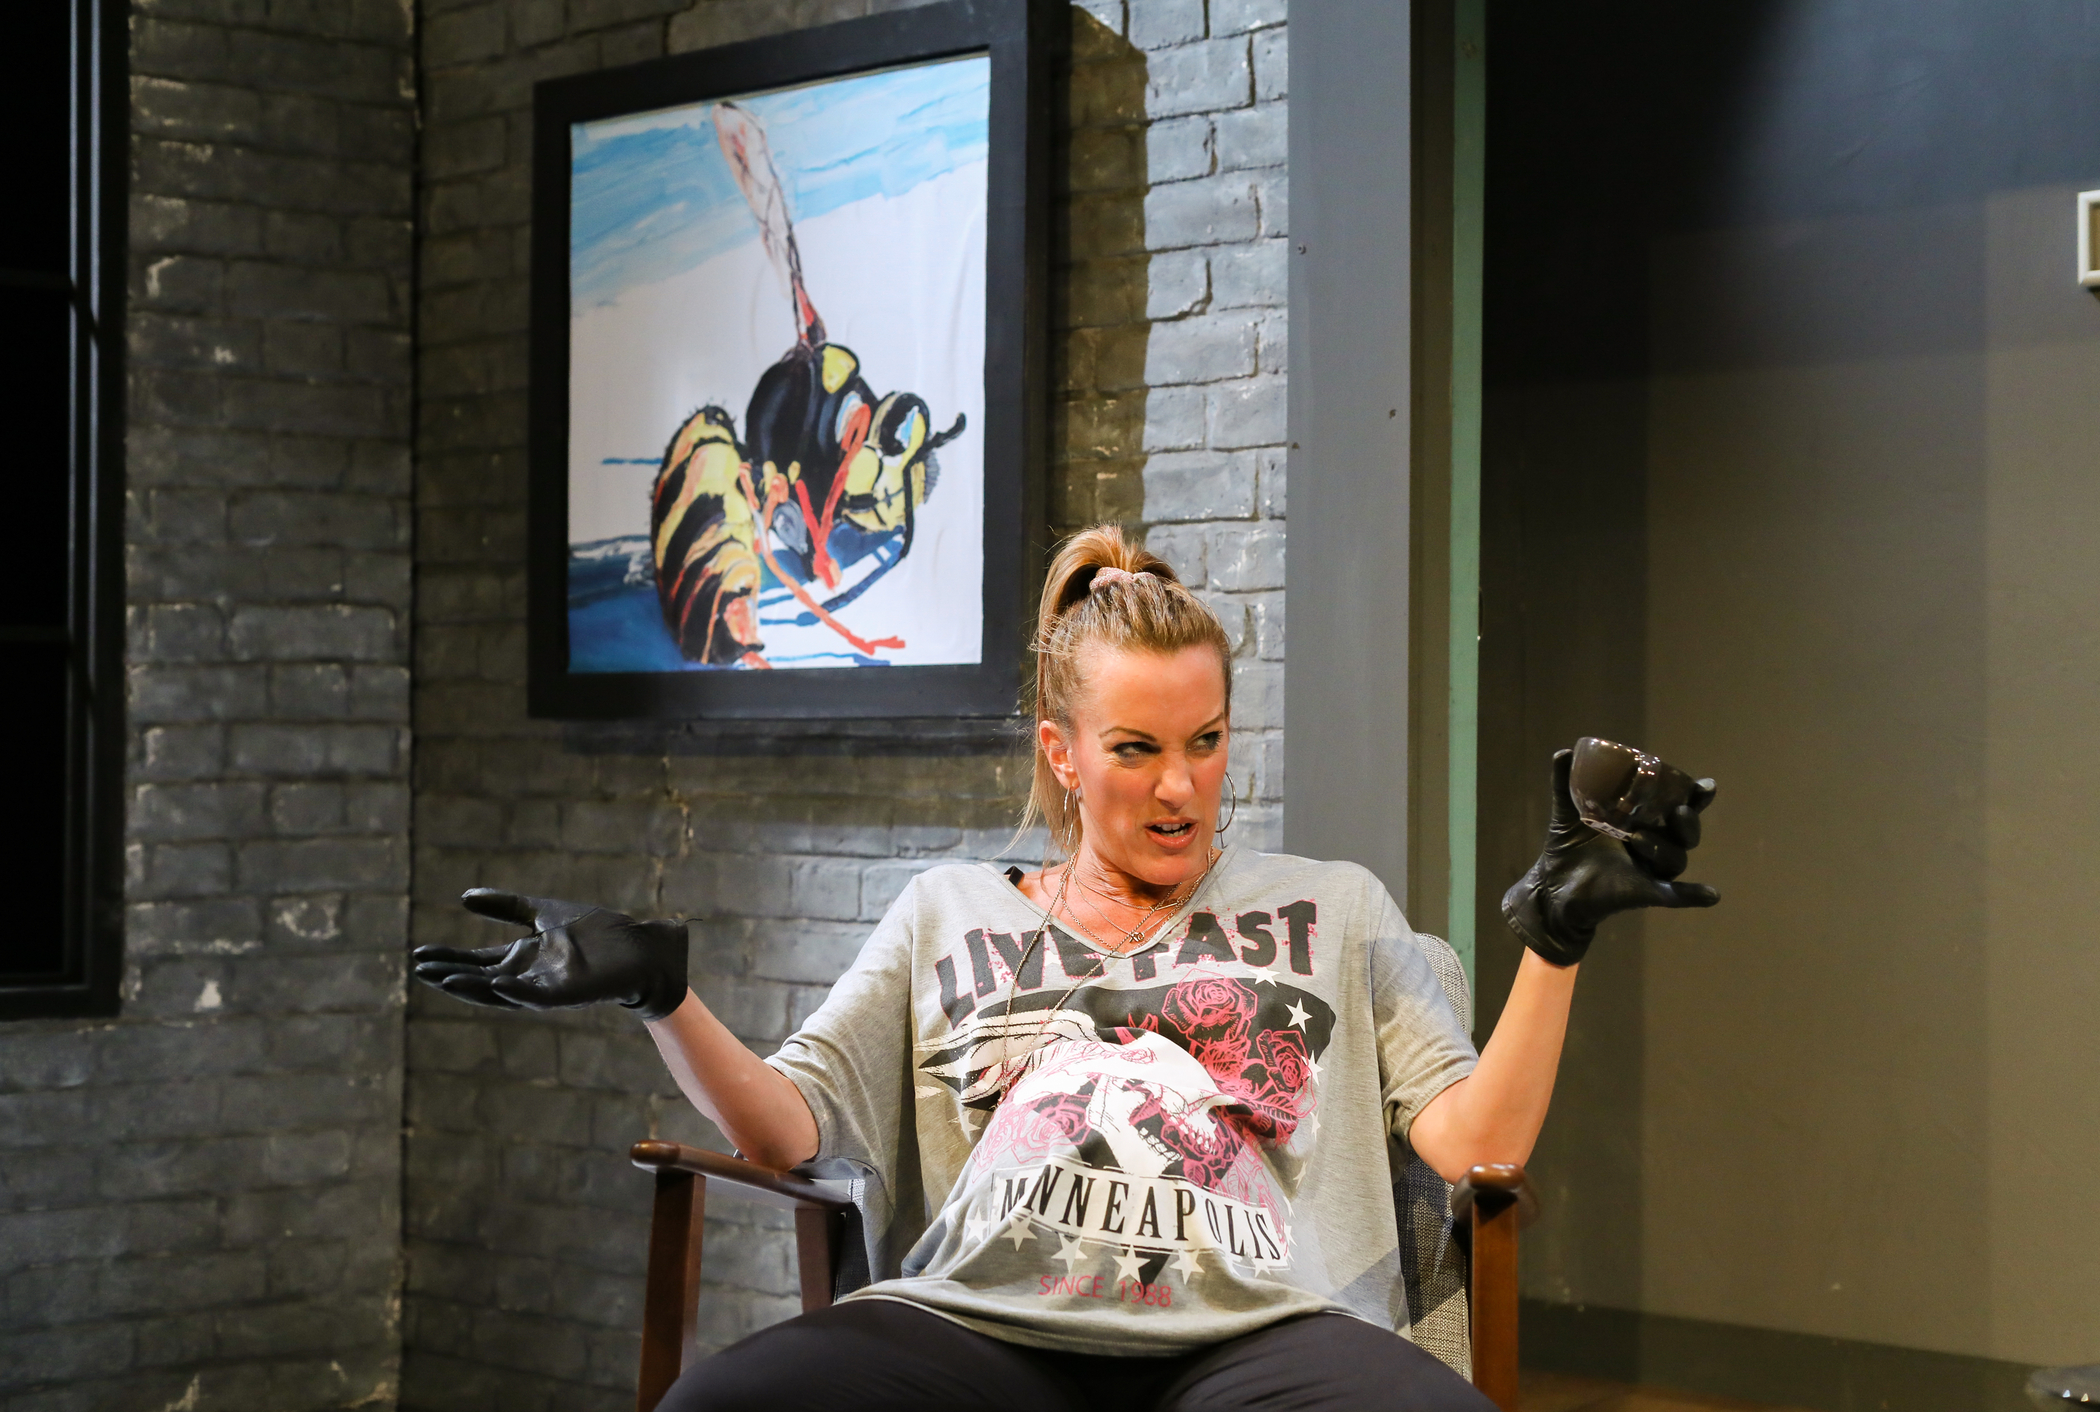 The Wasp at the Jermyn Street Theatre.